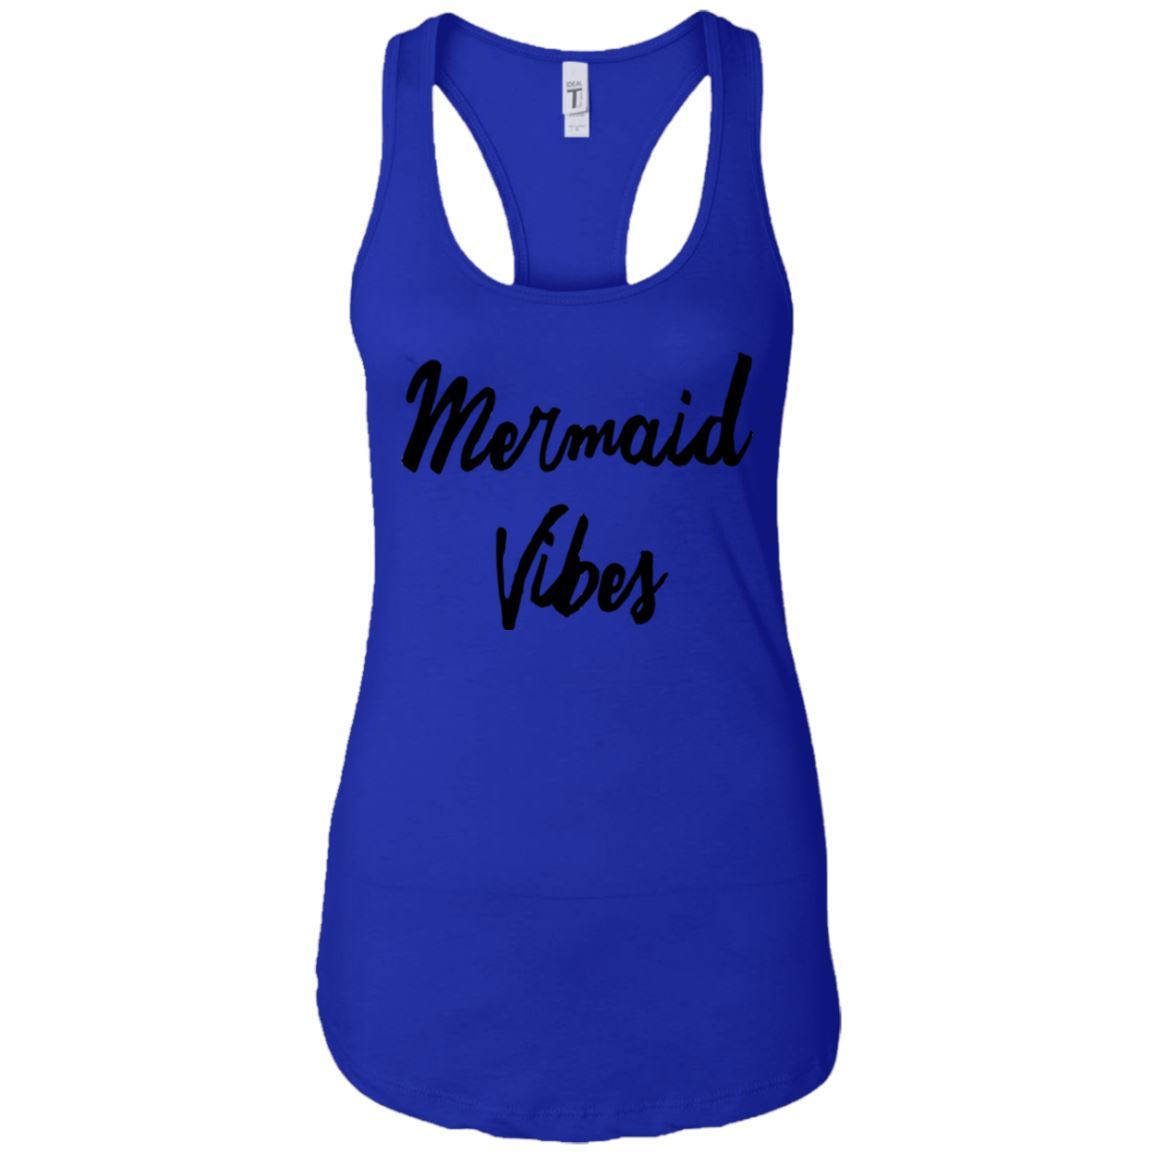 Mermaid Vibes Level Ladies Racerback Tank Mermaid Apparel Royal X-Small